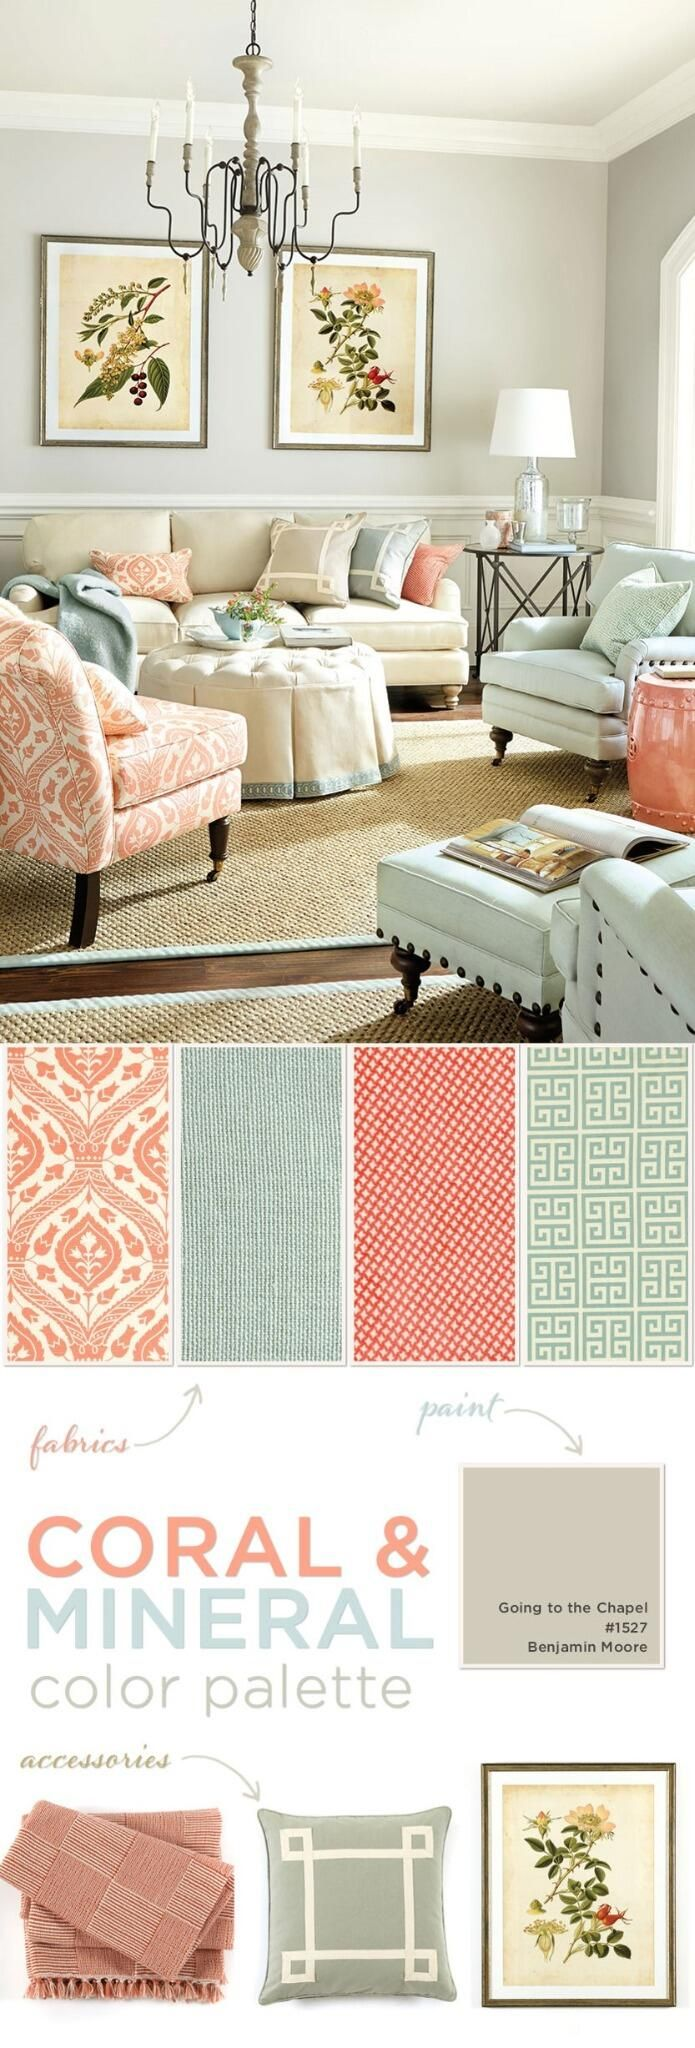 best 20 coral color decor ideas on pinterest coral room accents 50 inspiring living room ideas